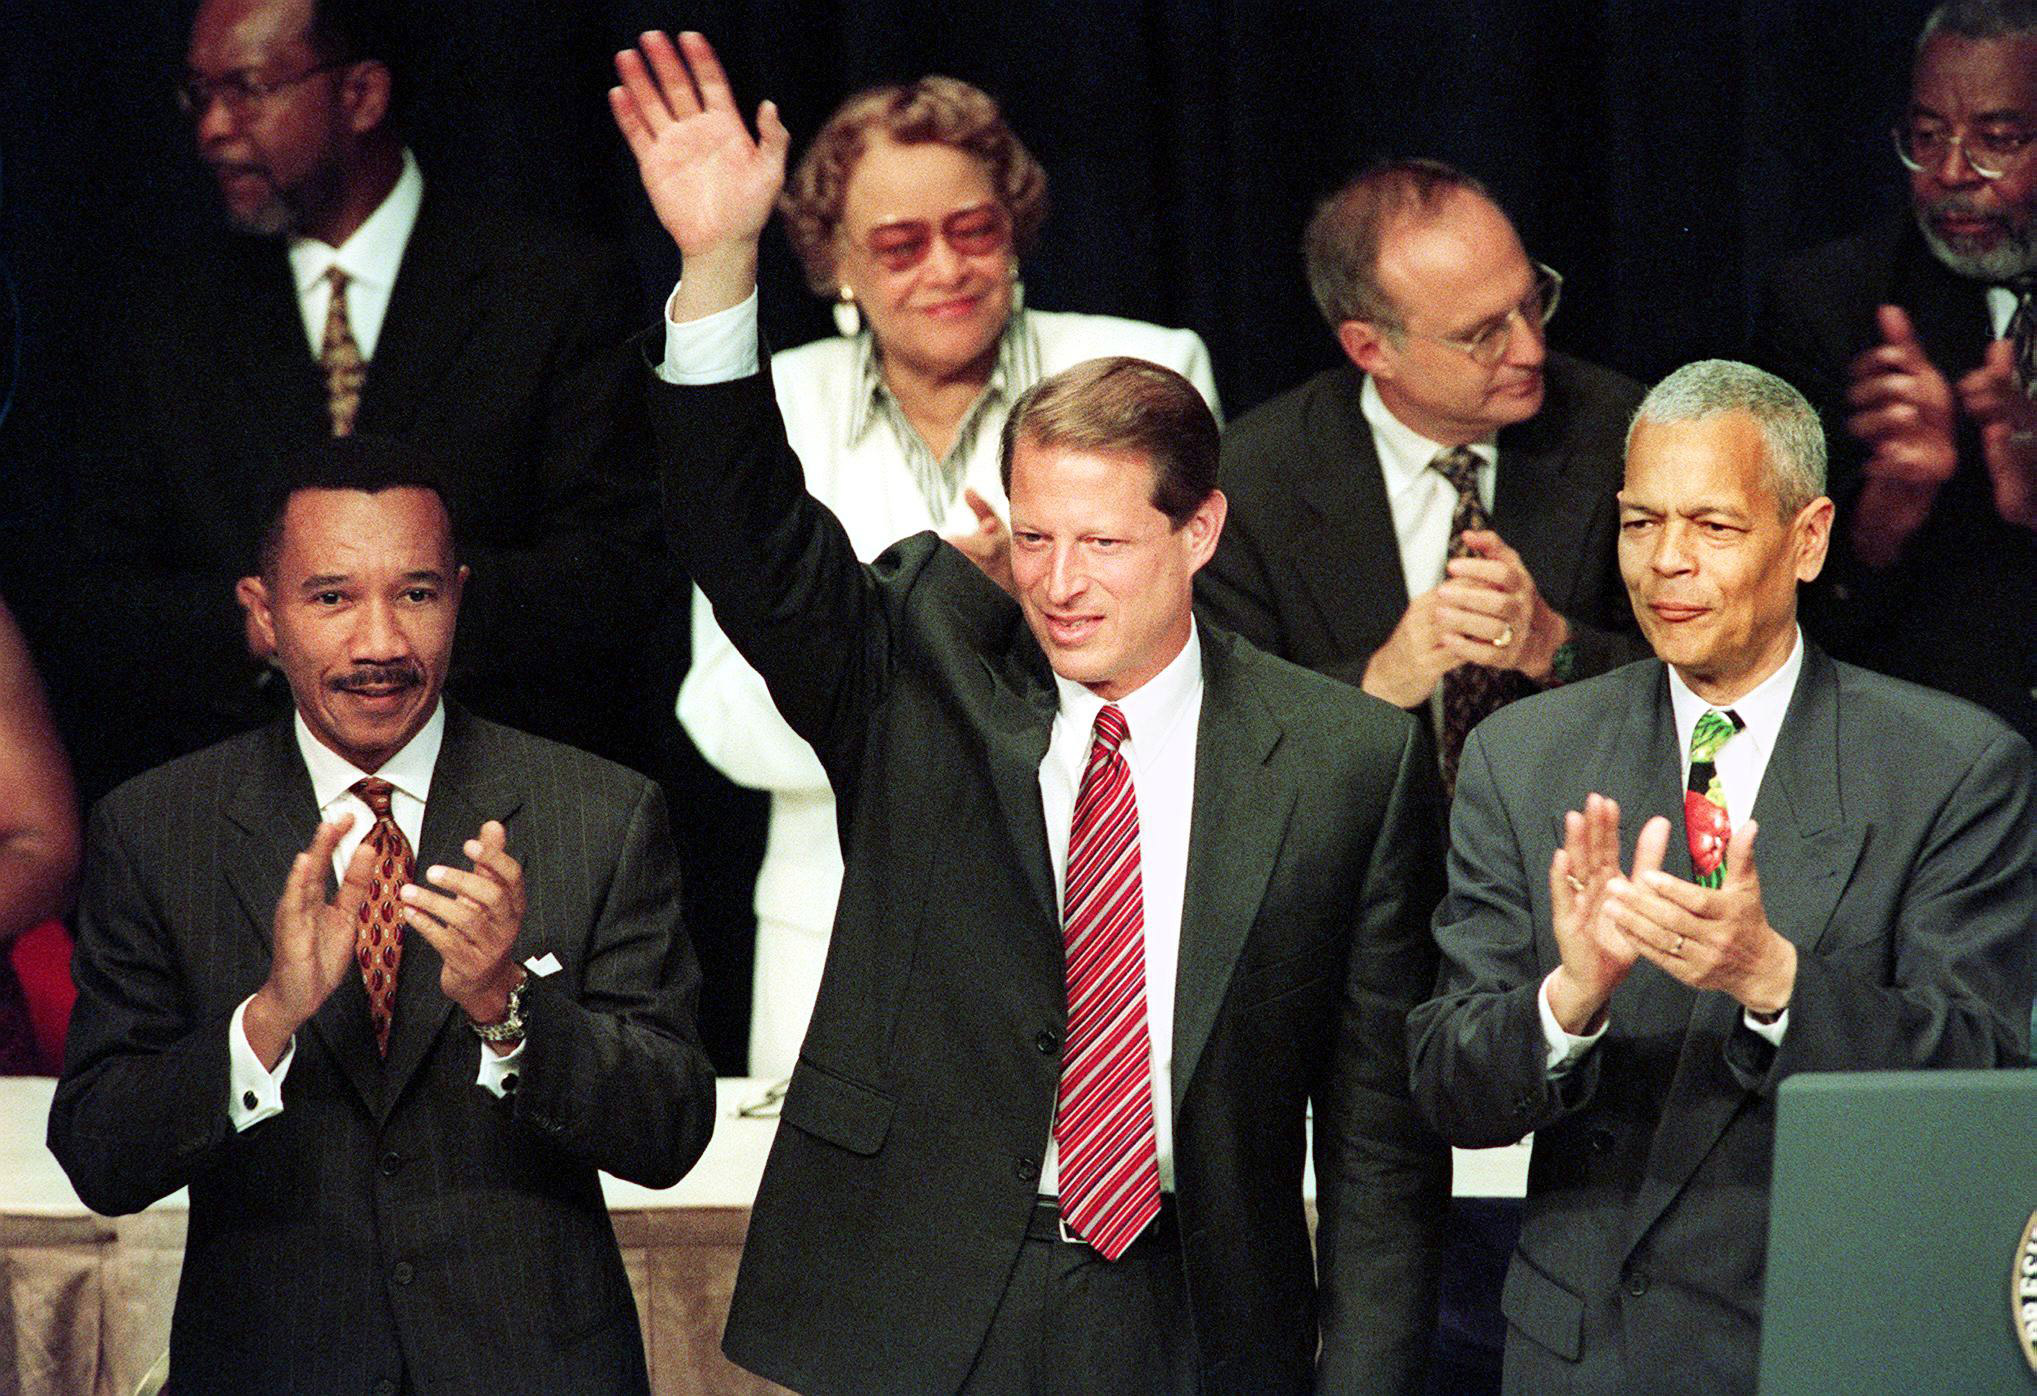 Vice President Al Gore waves to the audience with Kweisi Mfune, President of the National Association for the Advancement of Colored People (NAACP), and Julian Bond, chairman of the board of the NAACP, on July 15, 1999, in New York City at the 90th Annual NAACP convention.